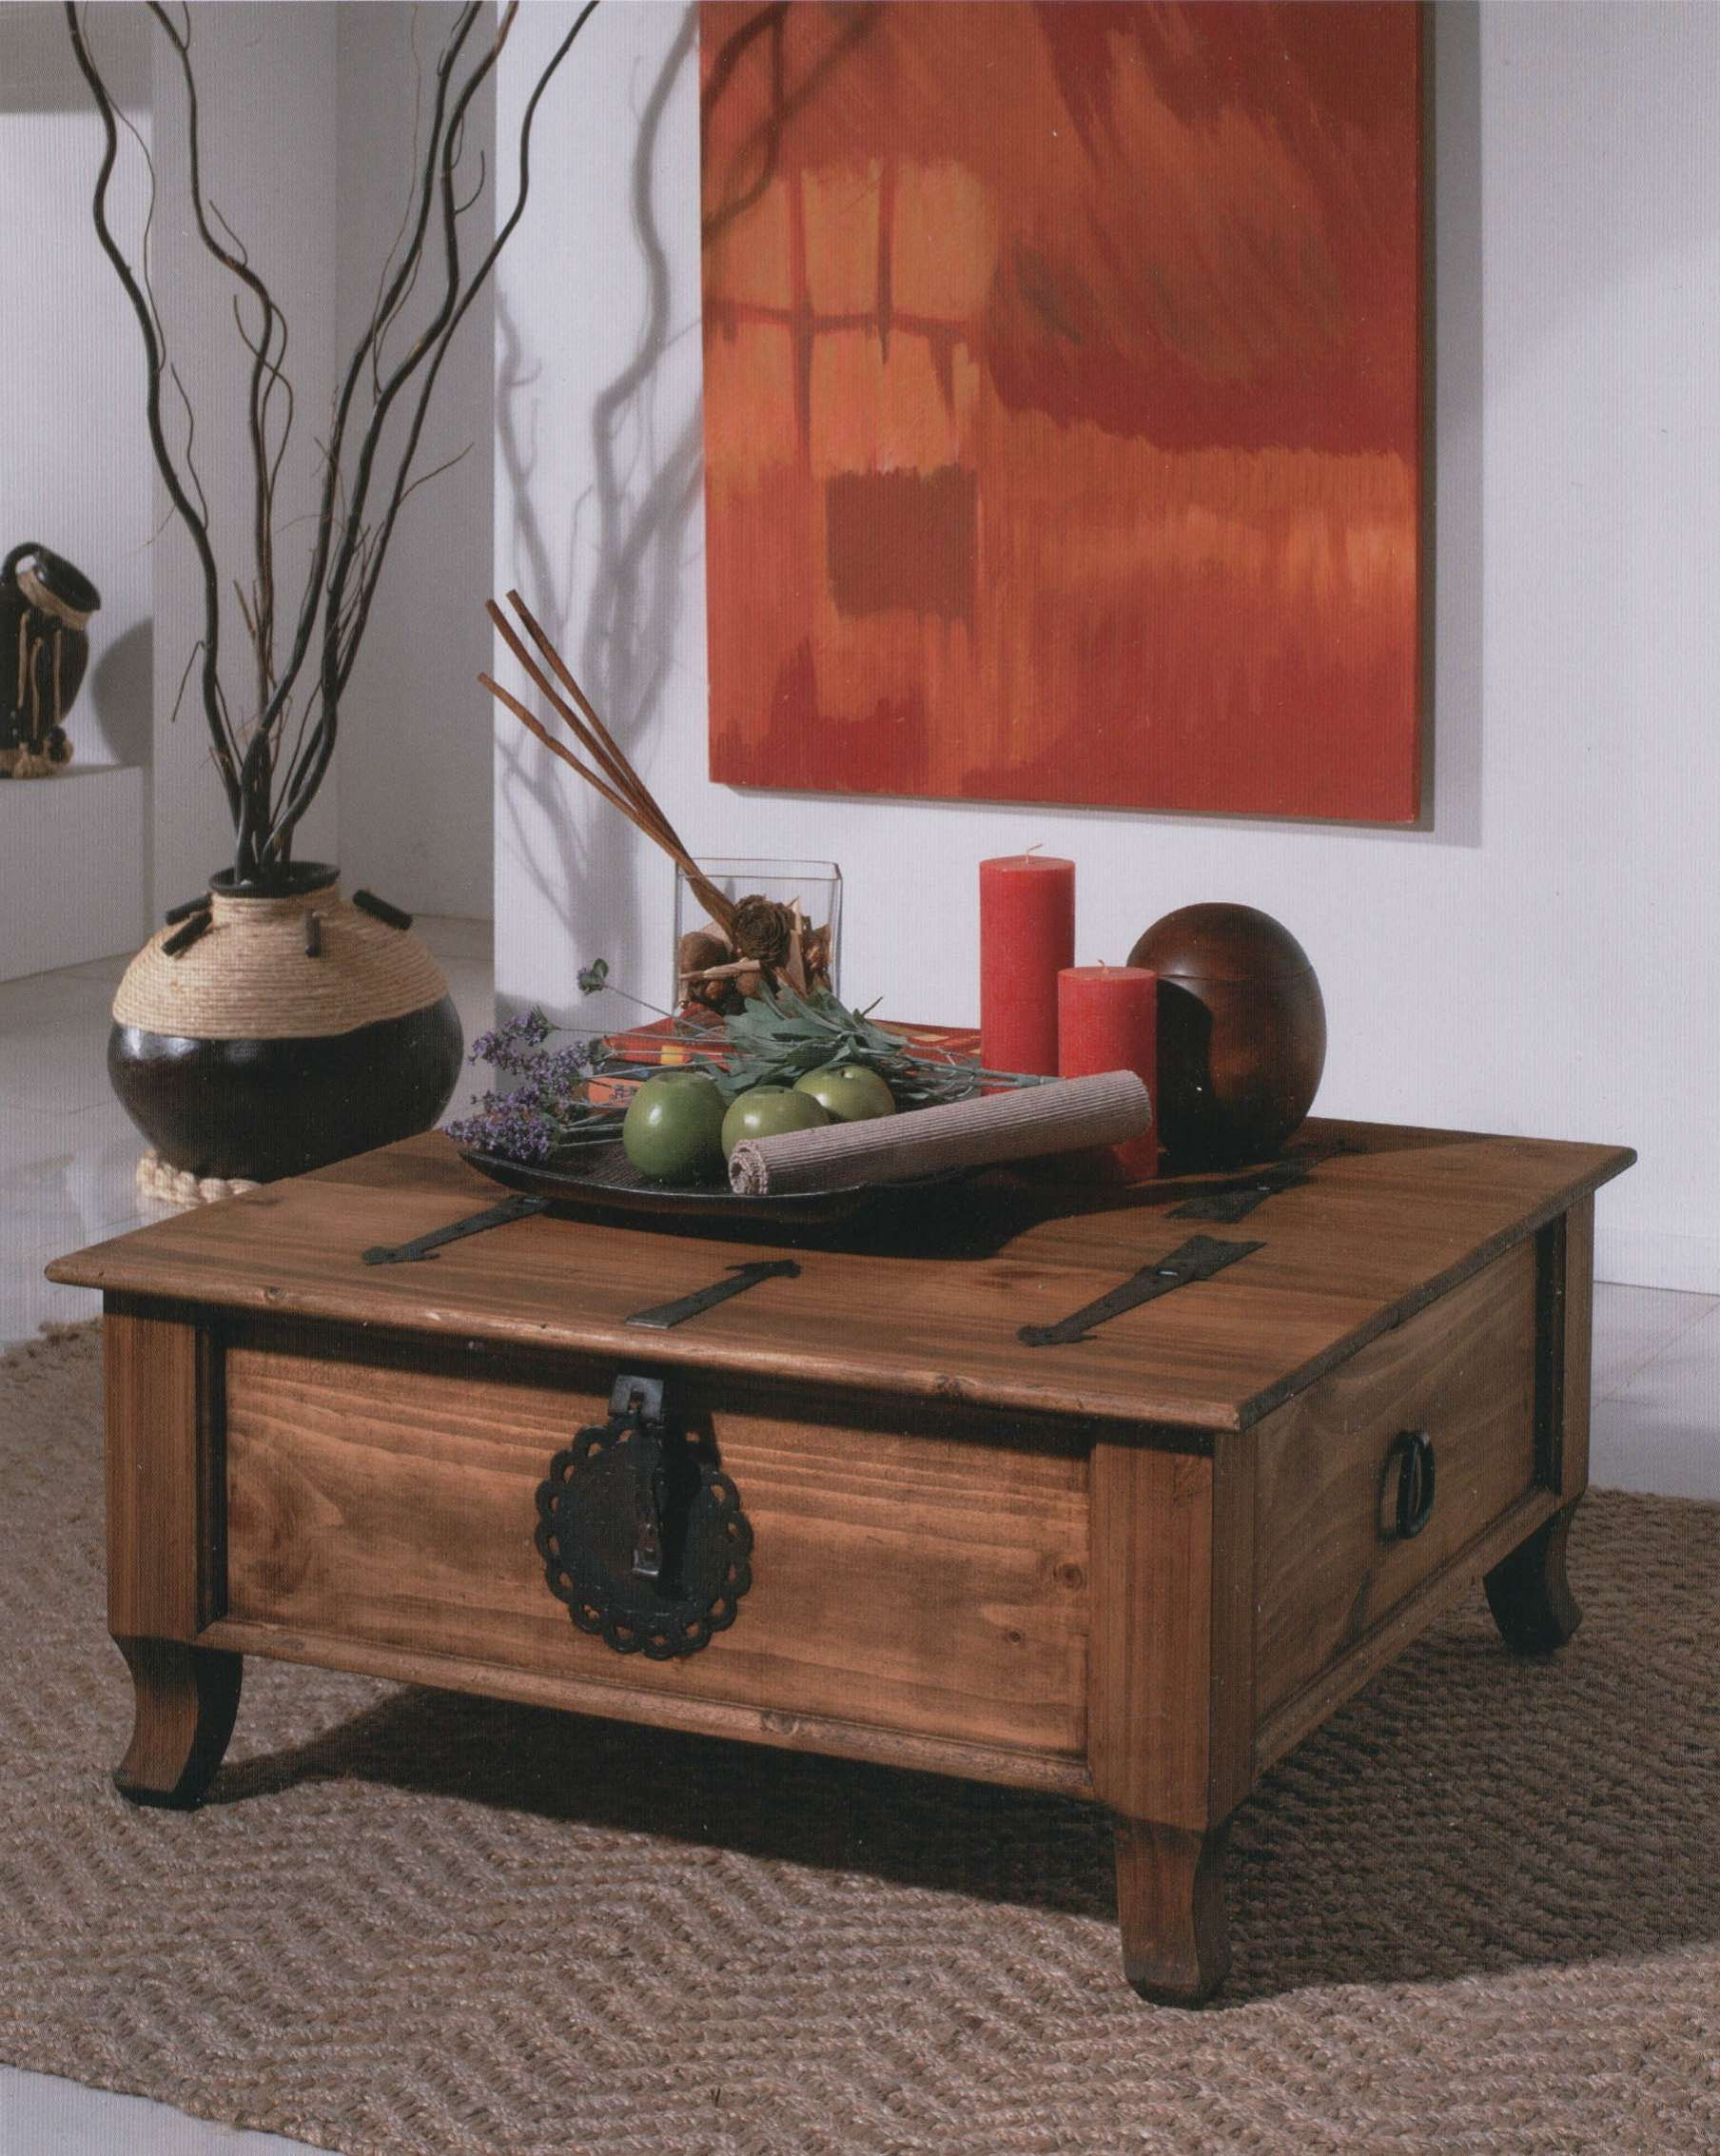 Coffee Tables Ideas: Trunks For Coffee Tables Ideas Antique Trunks In 2017 Steamer Trunk Stainless Steel Coffee Tables (View 10 of 20)